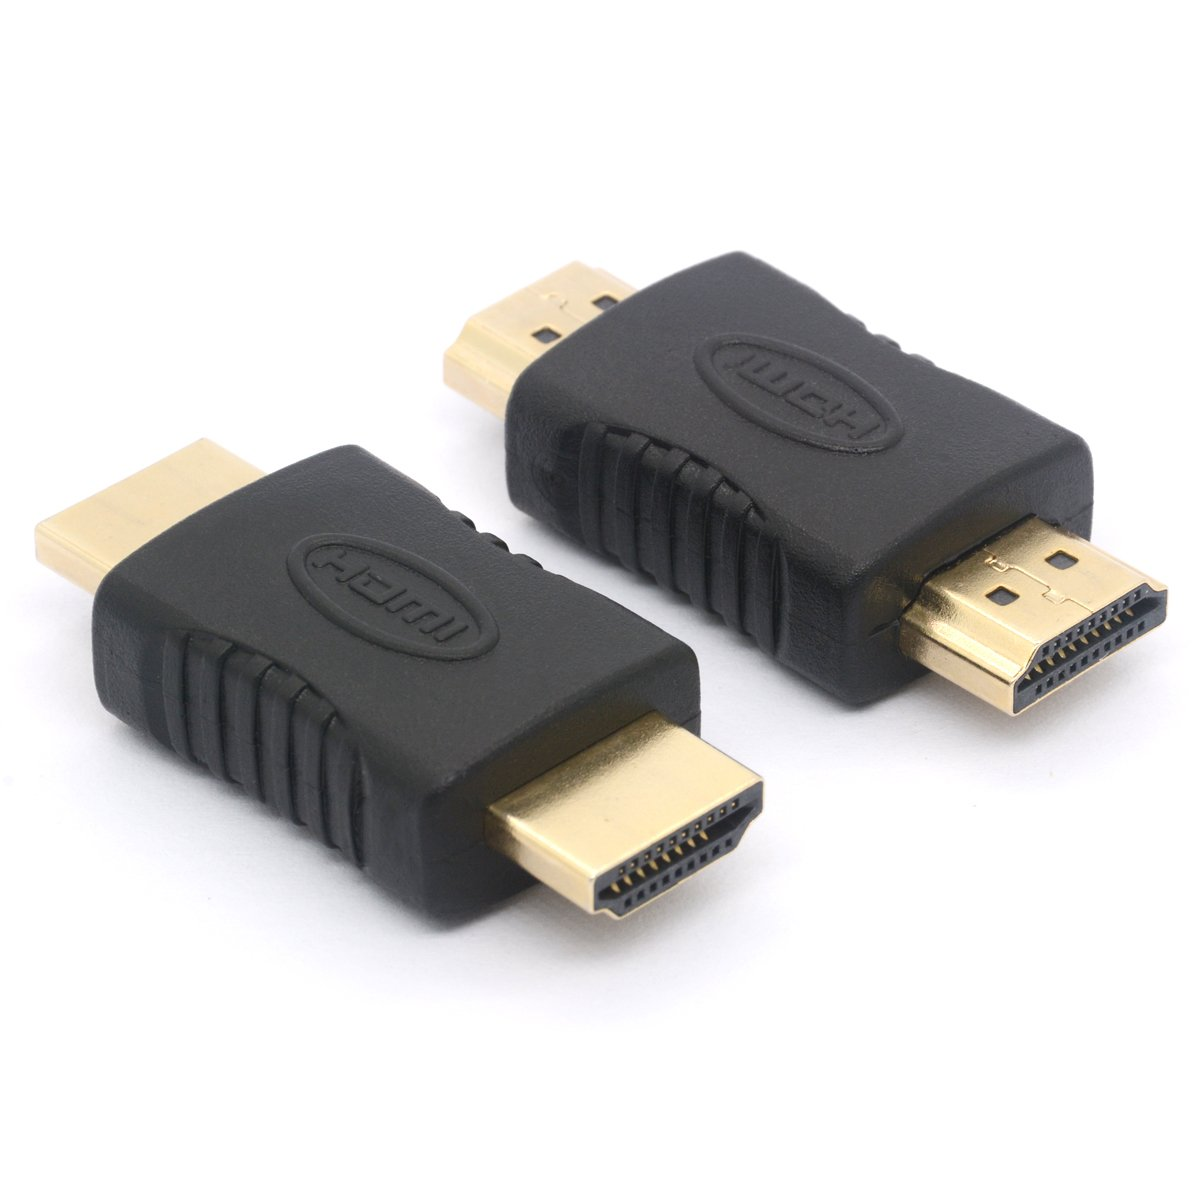 HDMI Coupler 2-Pack HDMI Male to HDMI Male Straight In-line Coupler Adapter 19 Pin HDMI Connector for HDTV